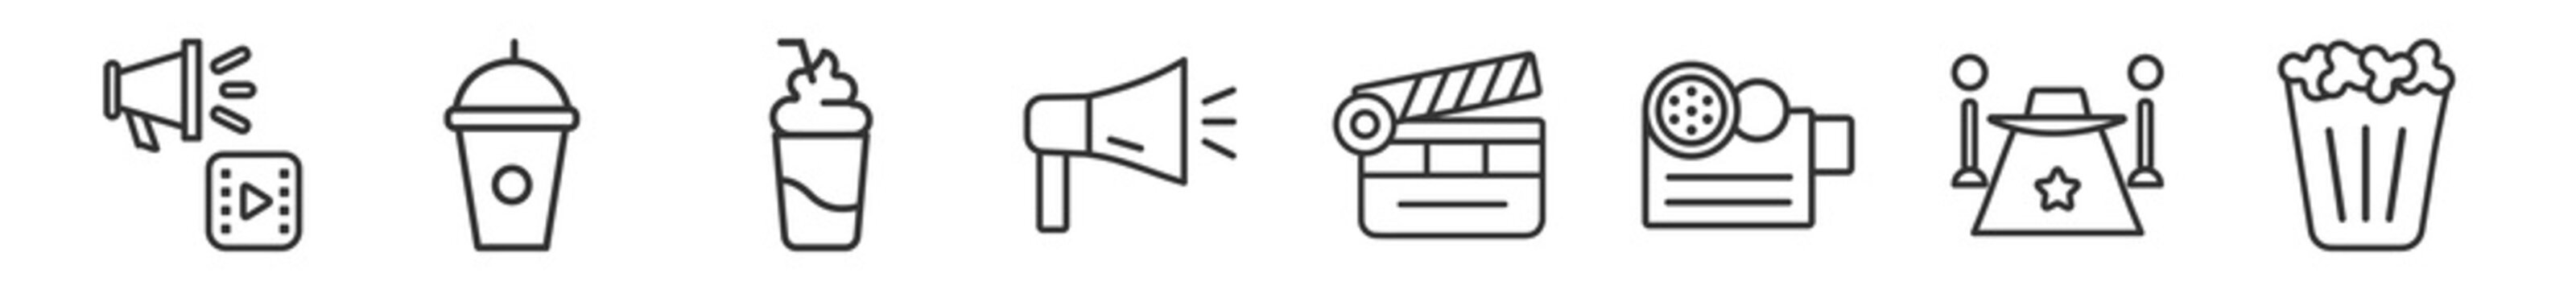 outline set of cinema line icons. linear vector icons such as cinematographic announcer, drink with straw, smoothie with straw, loud speaker facing right, movie clapper open, popcorn bag. vector